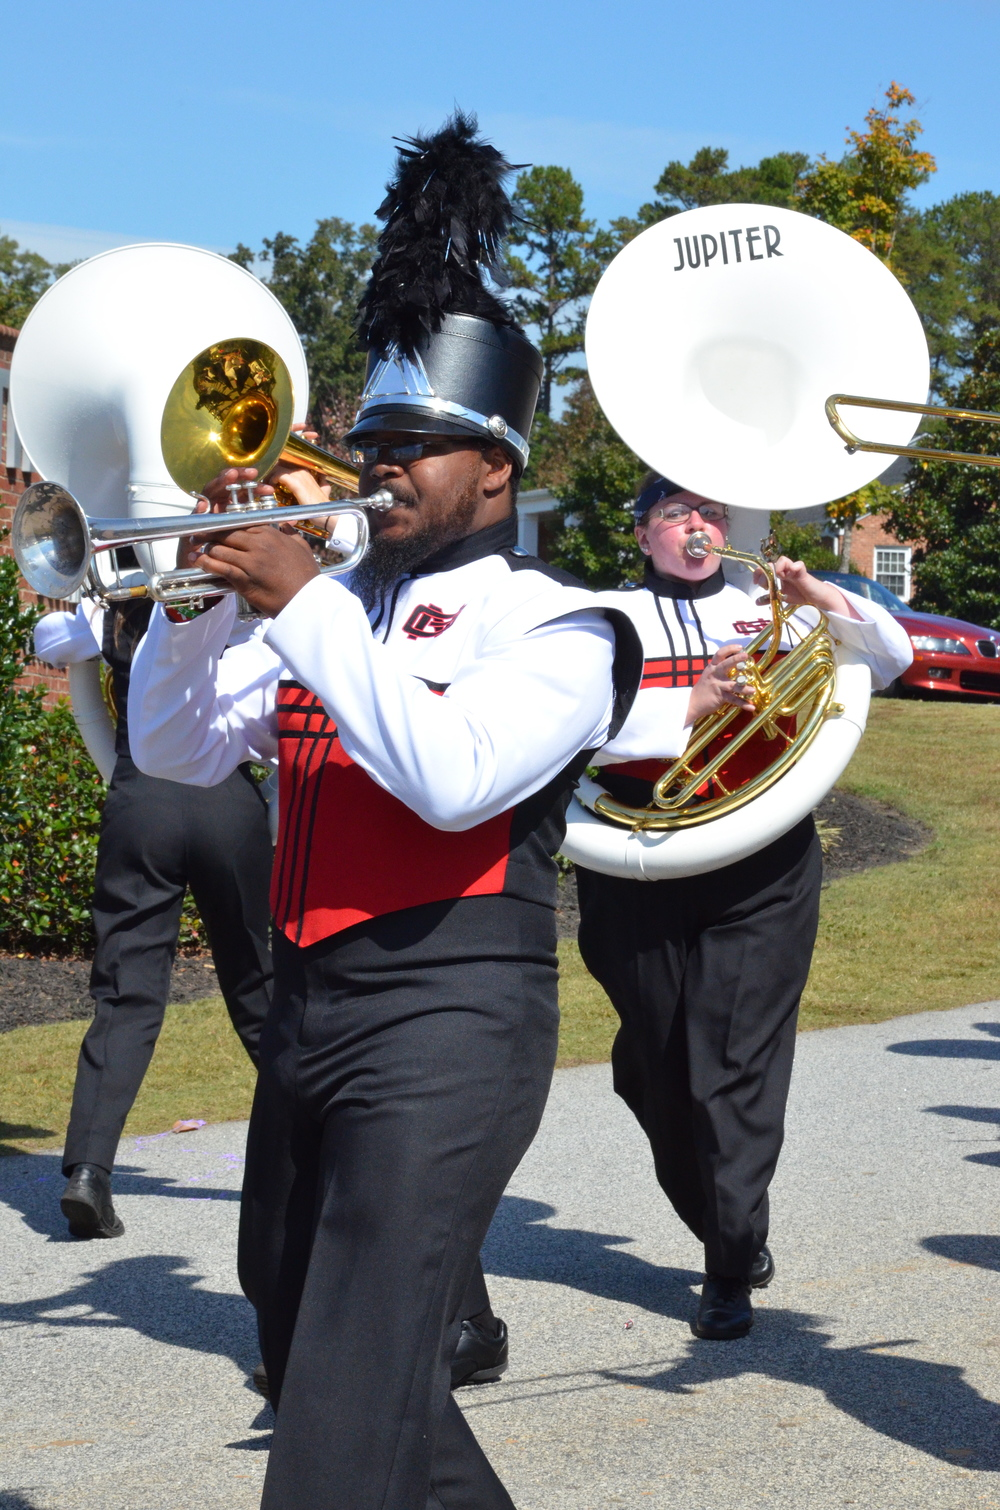 These band members are keeping their heads held high as they walk through the parade.